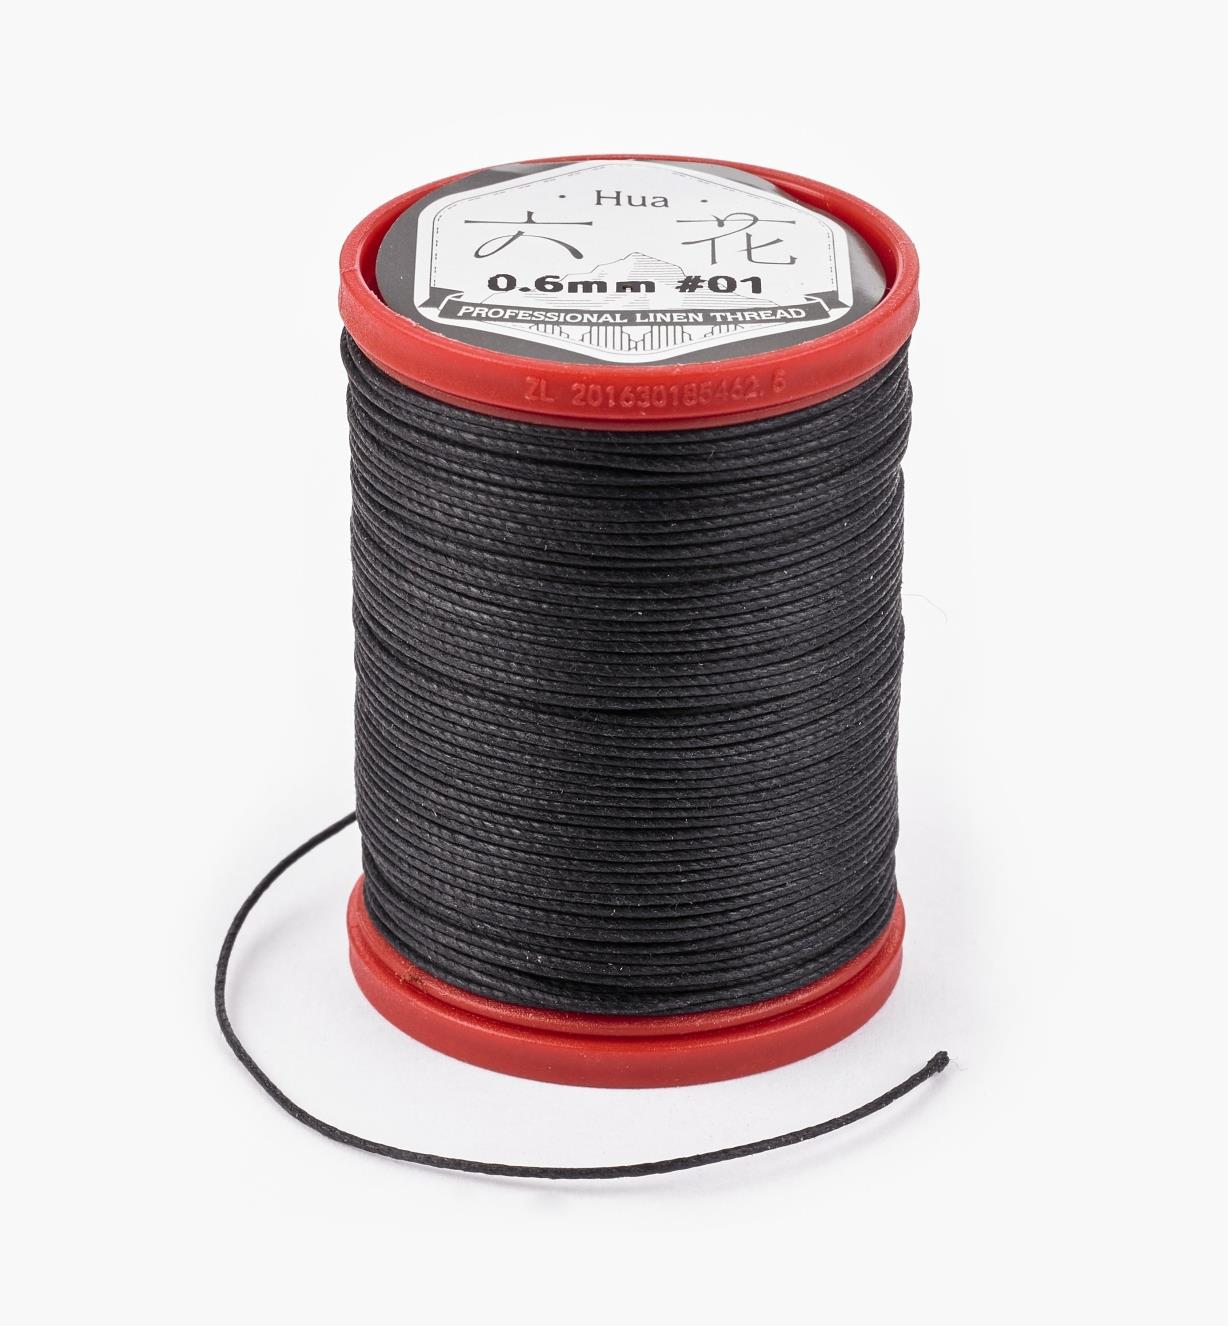 97K0911 - 0.6mm Black Waxed Linen Thread